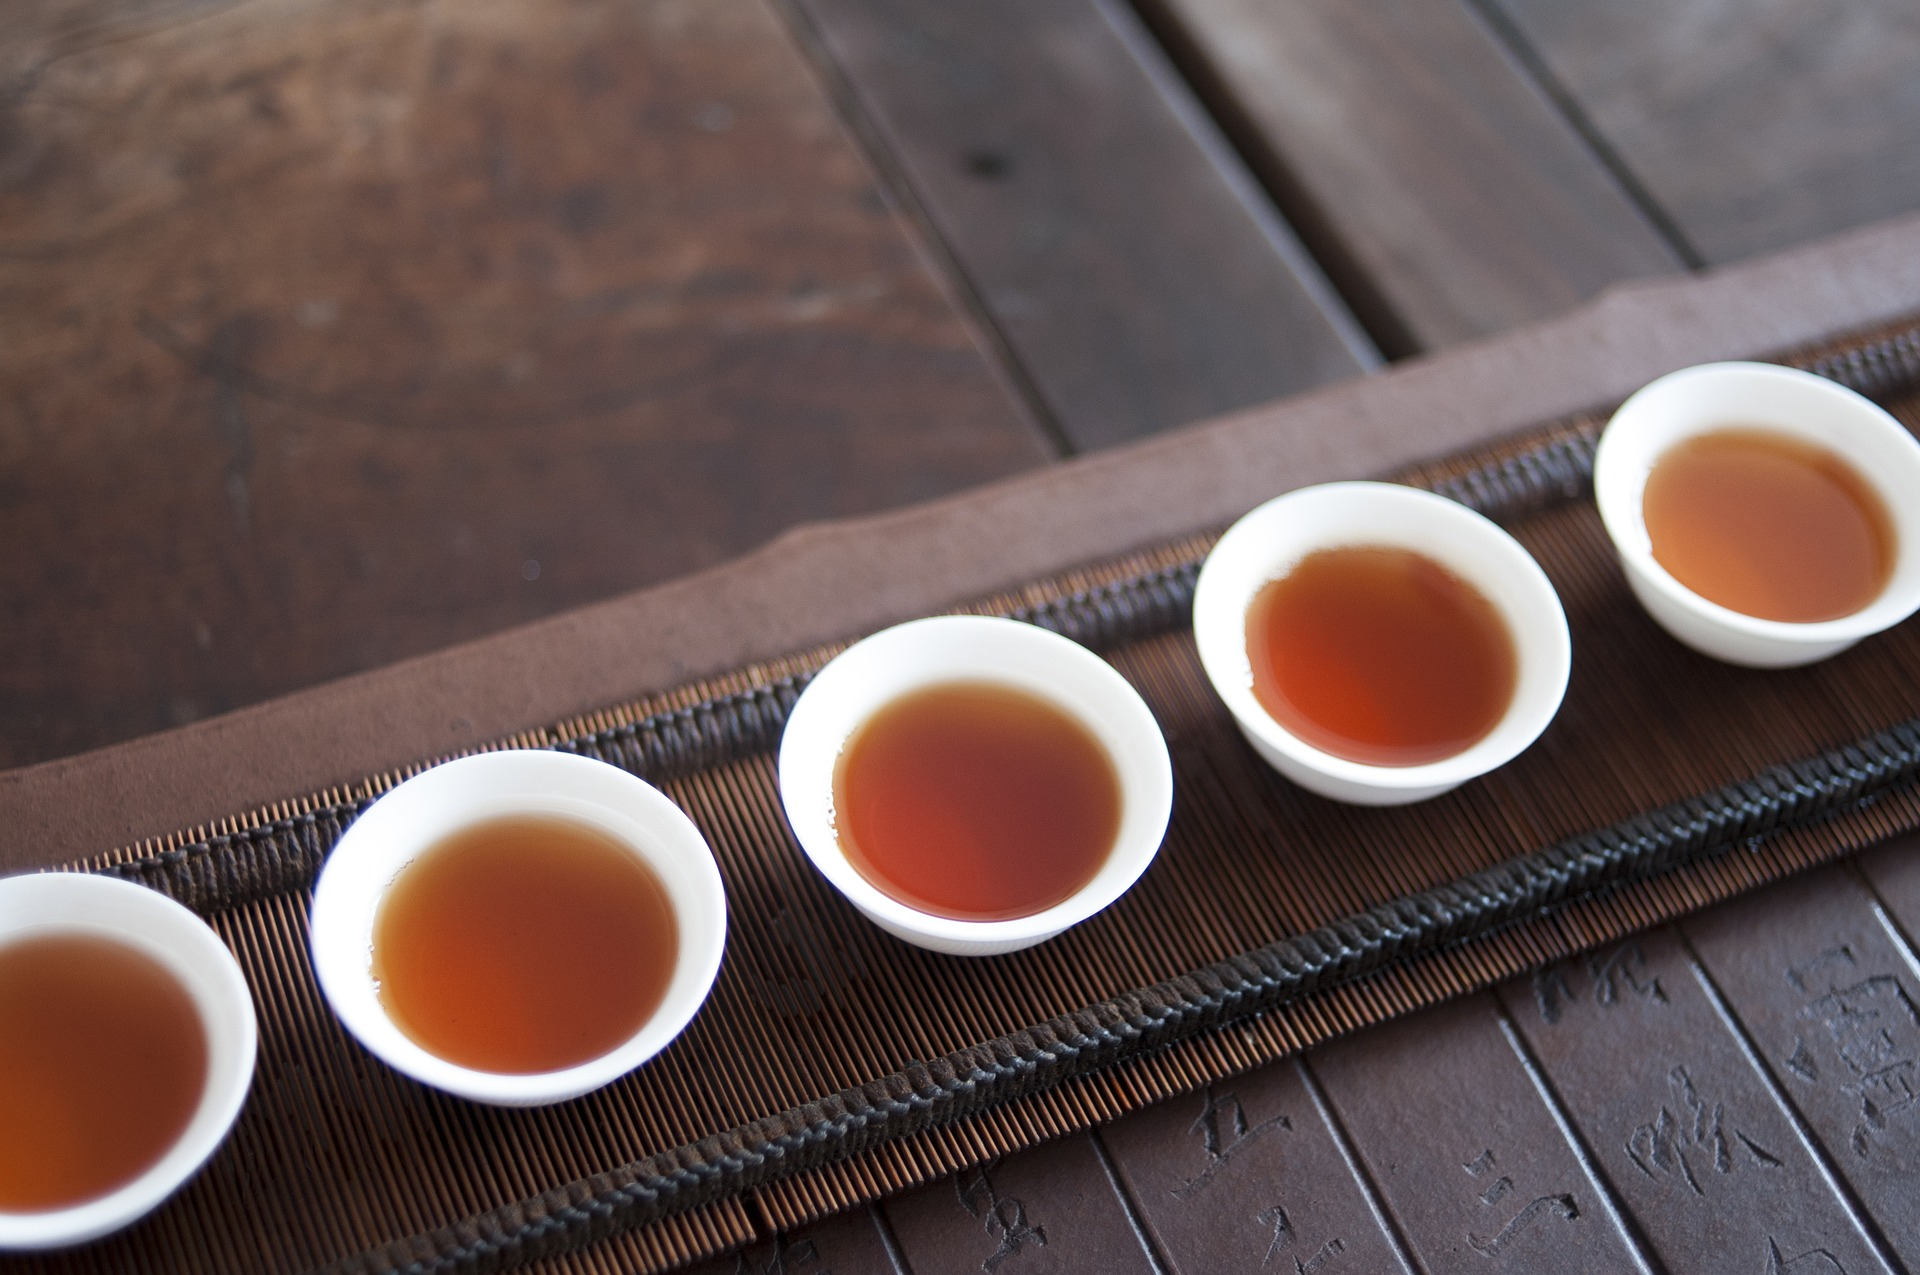 How to cook Pu-erh: experts share the subtleties of tea drinking